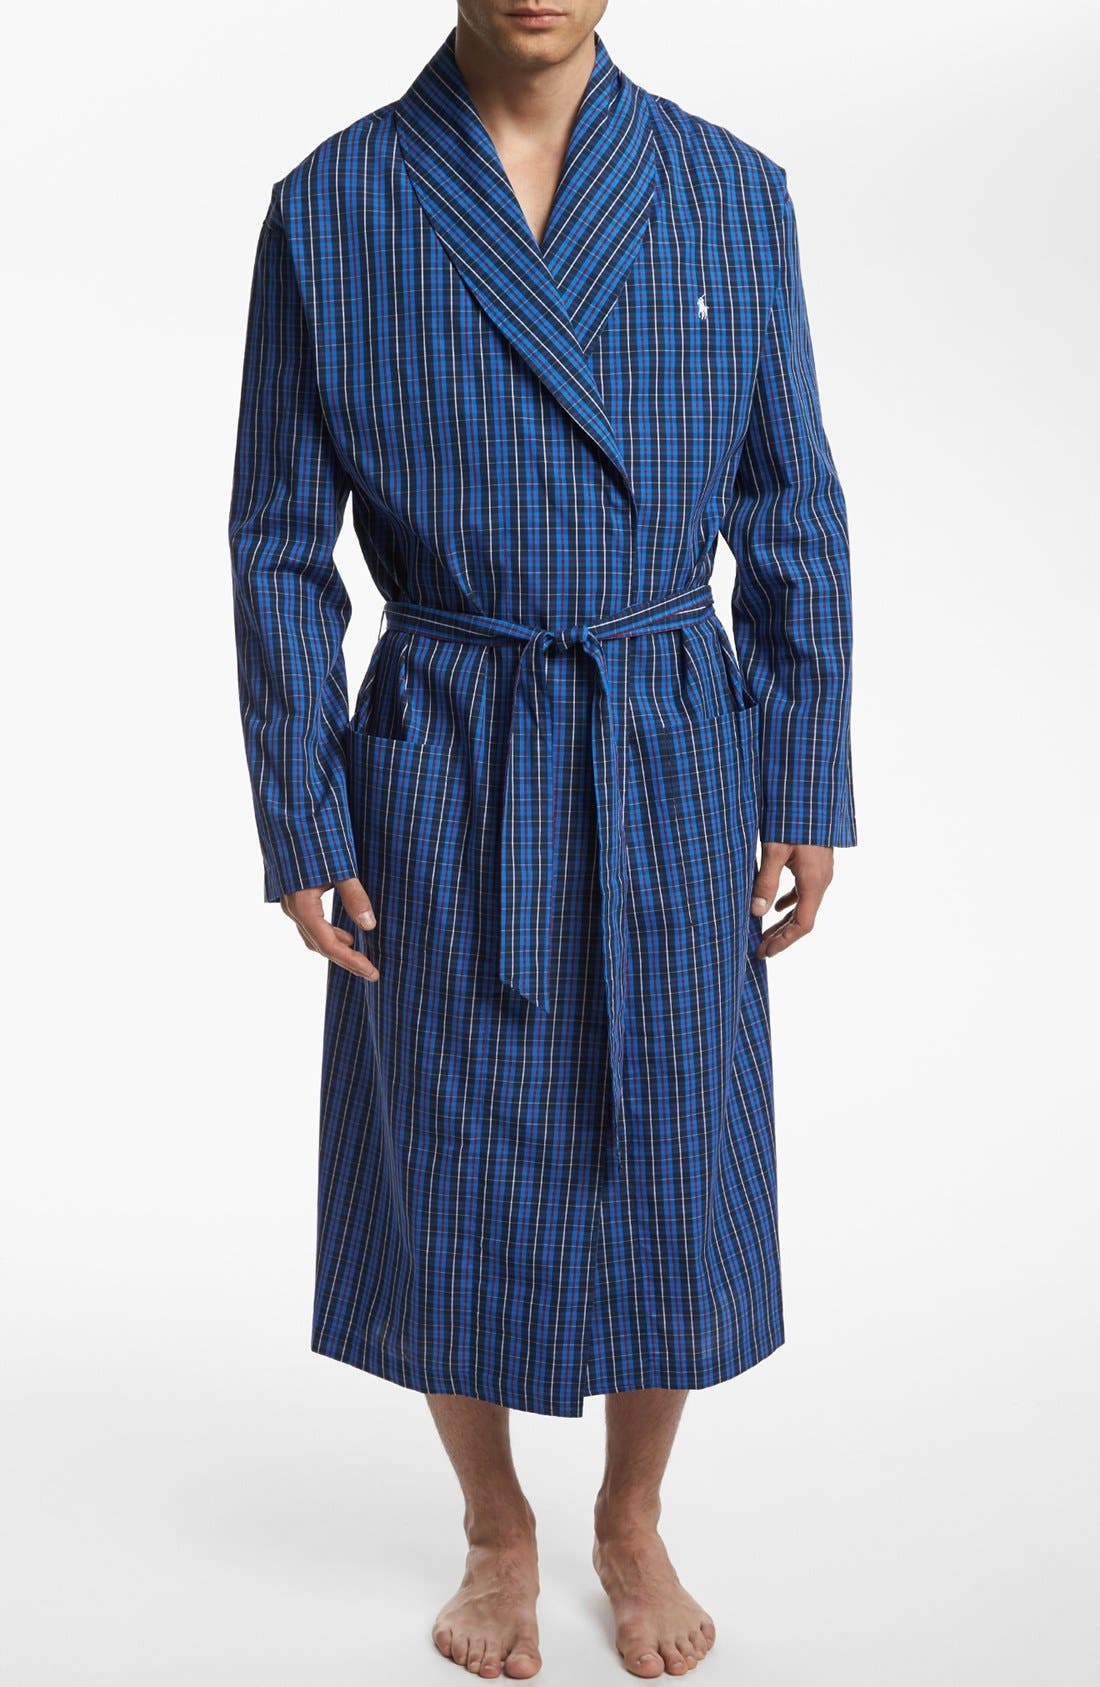 polo ralph lauren woven robe - Mens Bathrobes